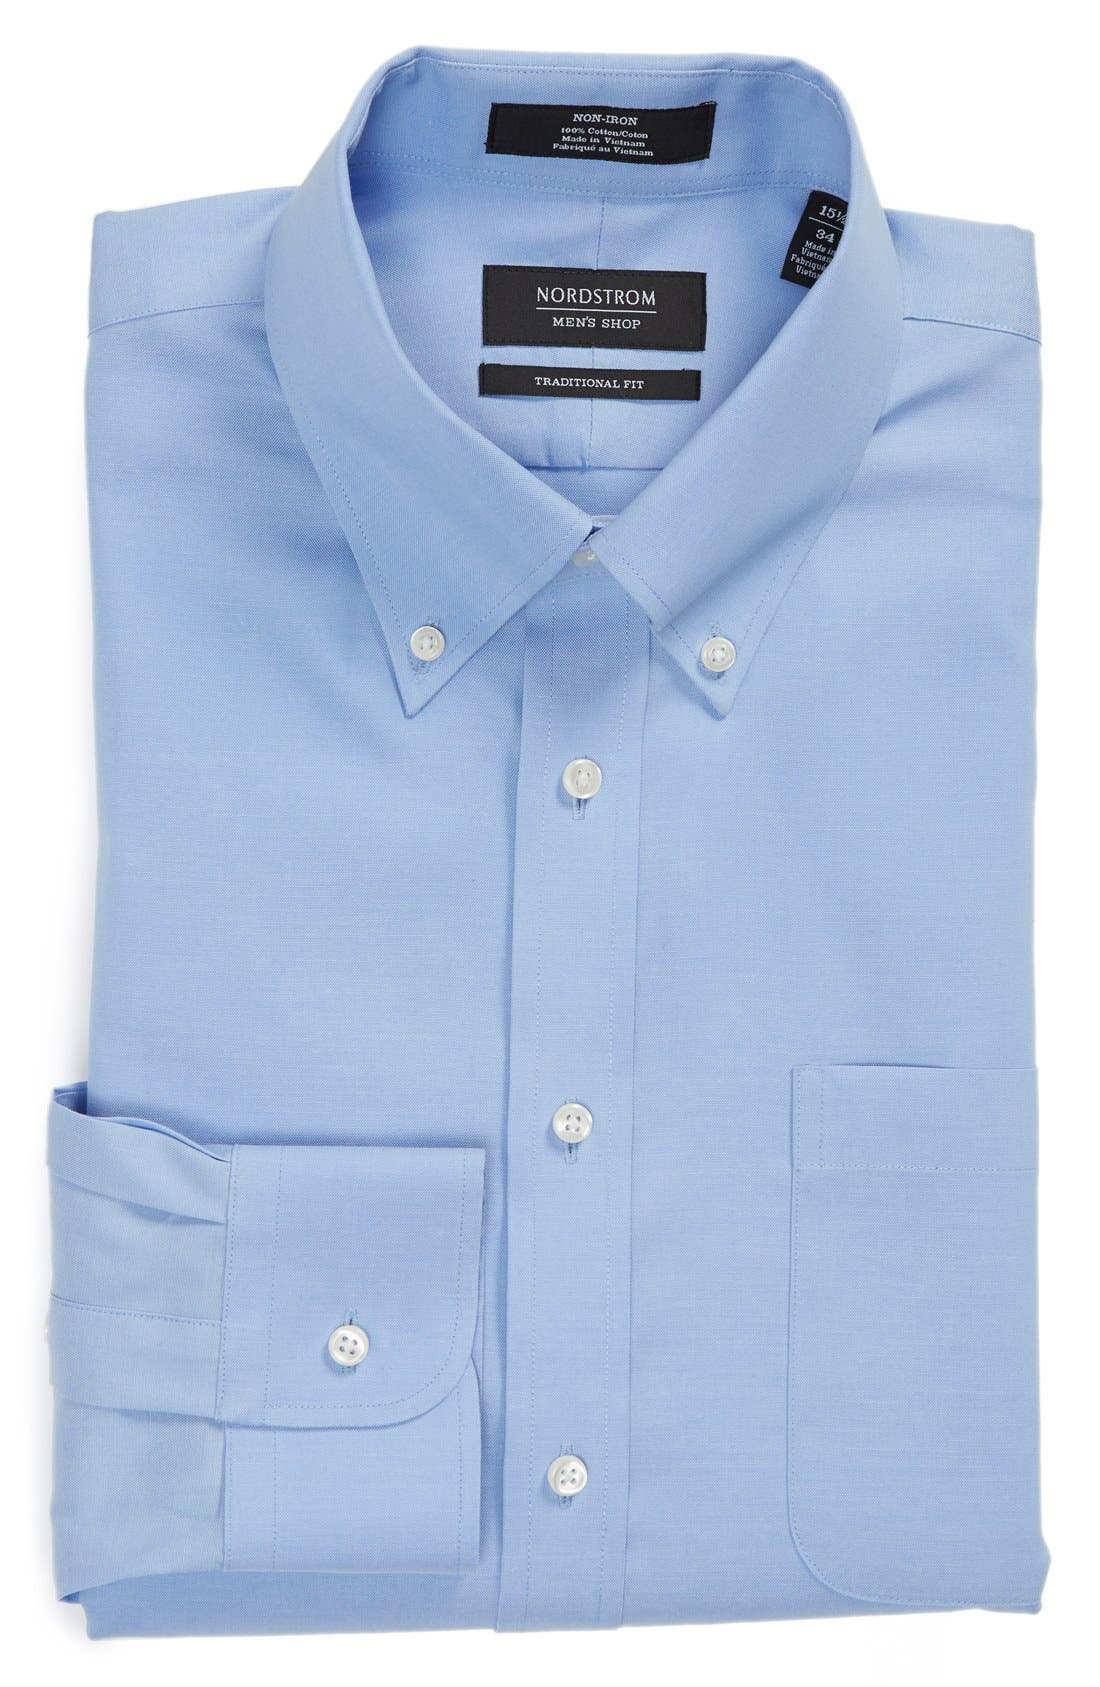 NORDSTROM MENS SHOP Traditional Fit Non-Iron Solid Dress Shirt